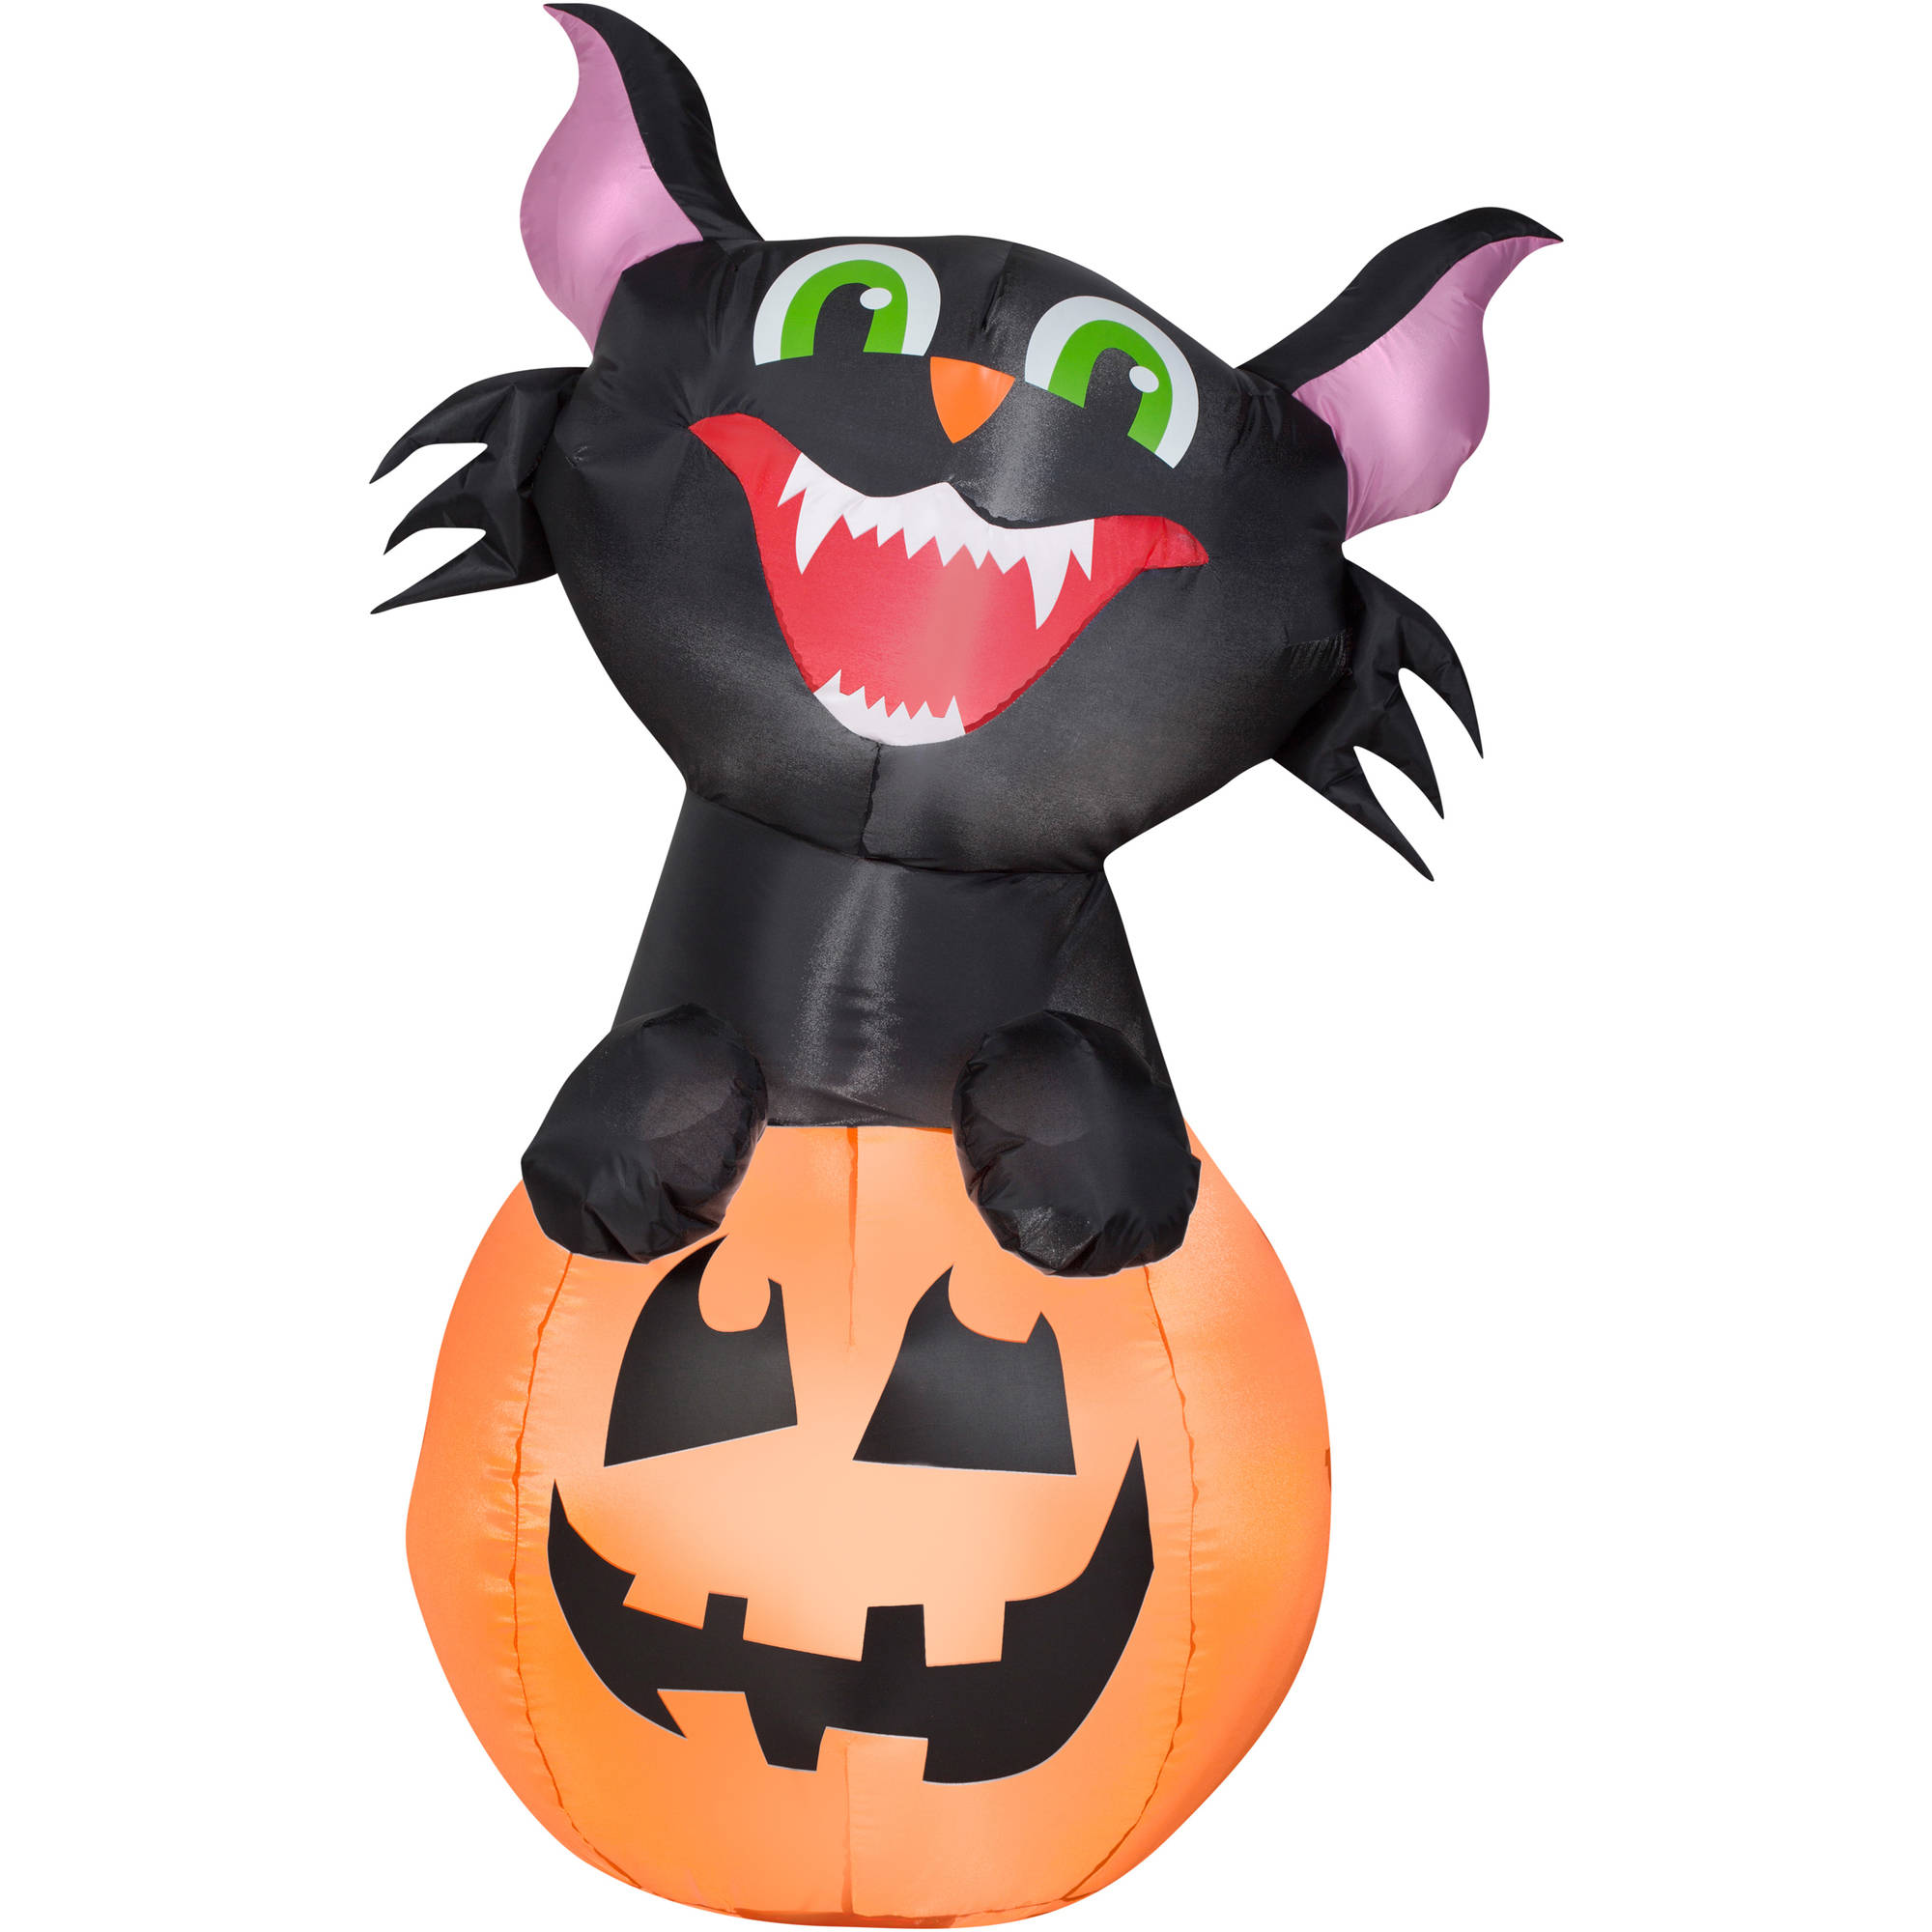 Airblown Inflatable-Pumpkin Cat 3.5ft tall by Gemmy Industries